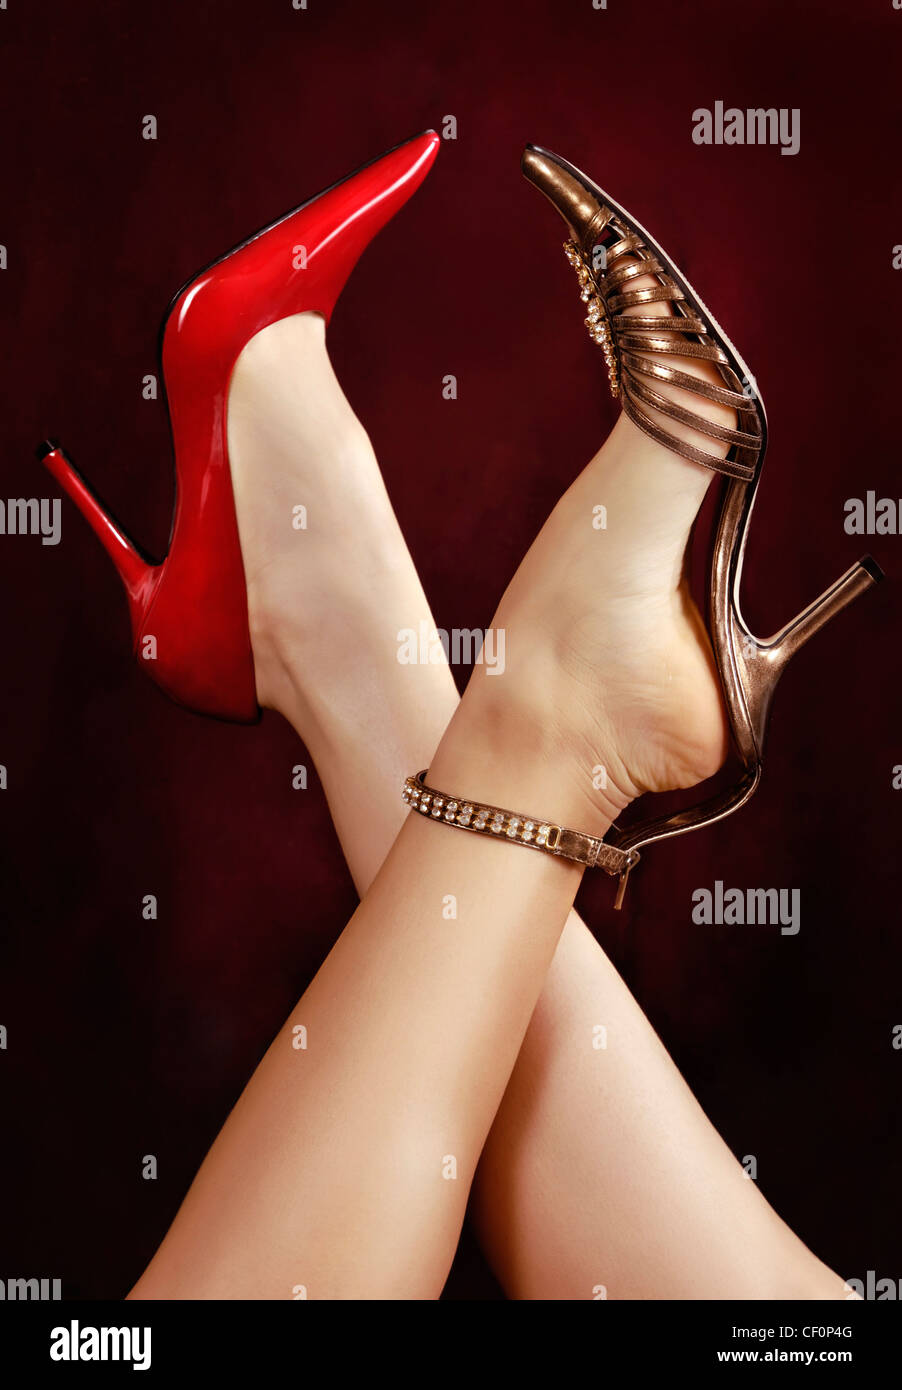 Two women crossing their legs in sexy high heel shoes Stock Photo ...